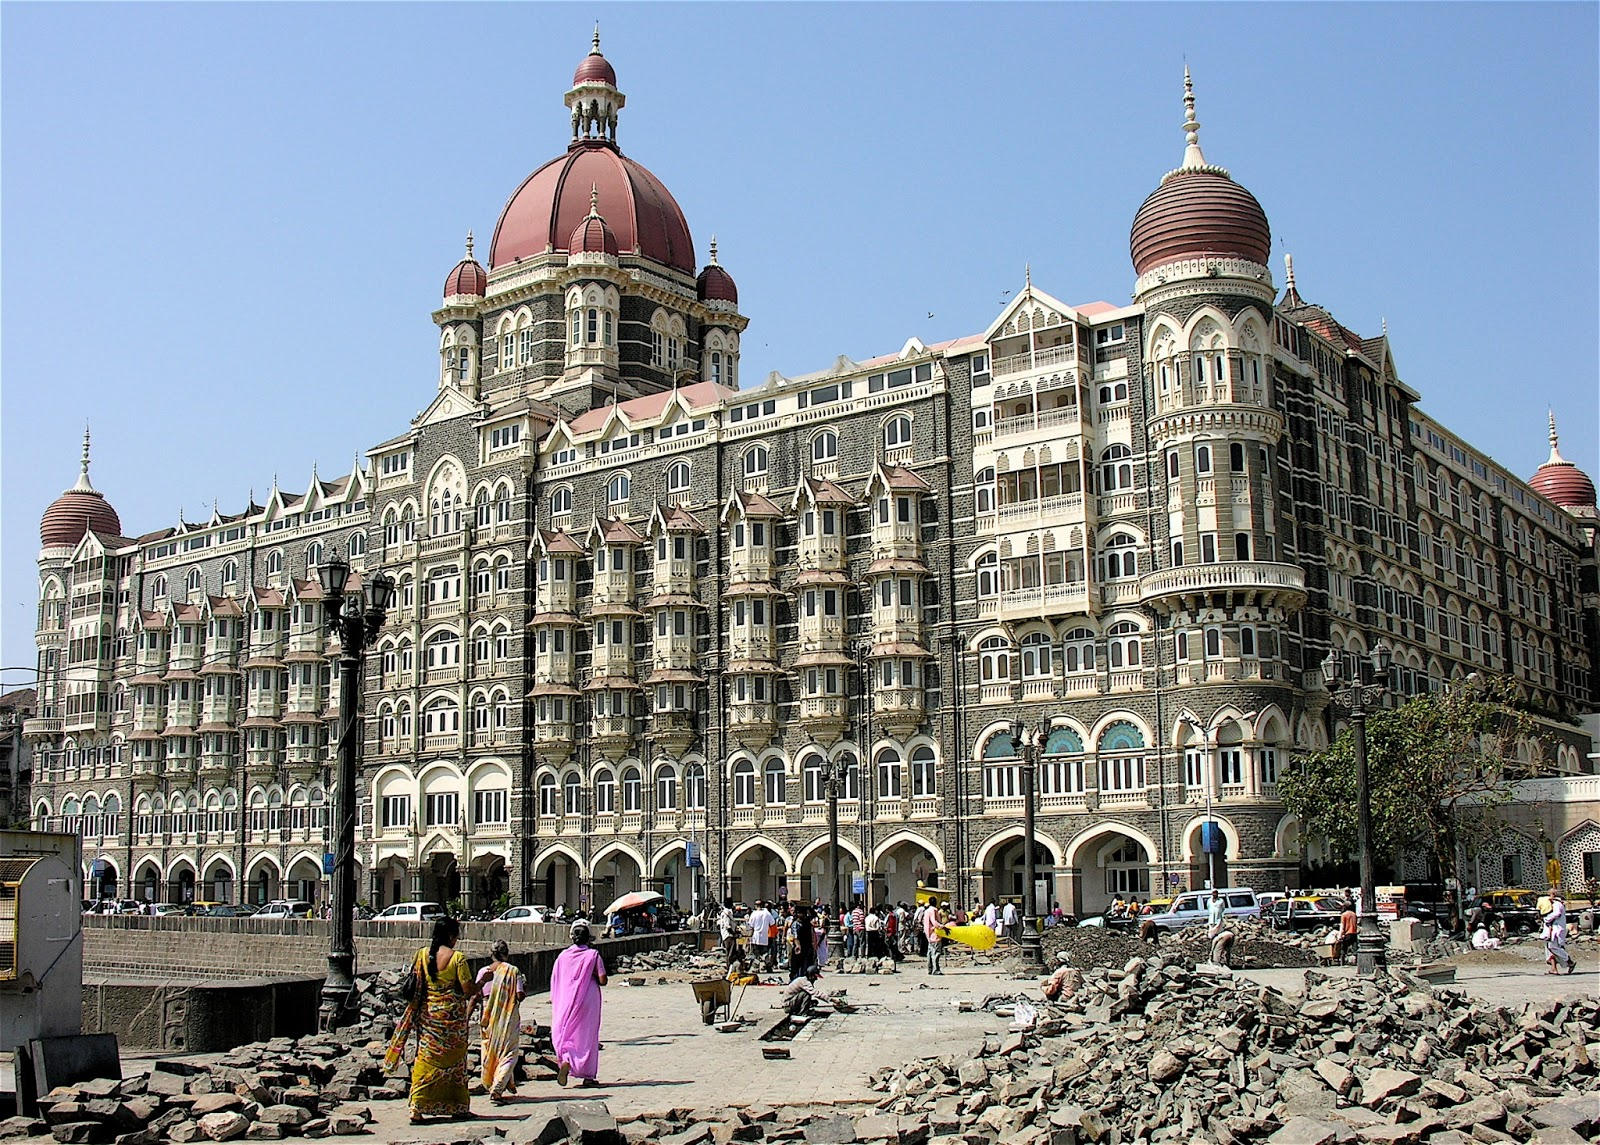 hotel mumbai hd wallpapers download 1080p Fine HD Wallpapers 1600x1145